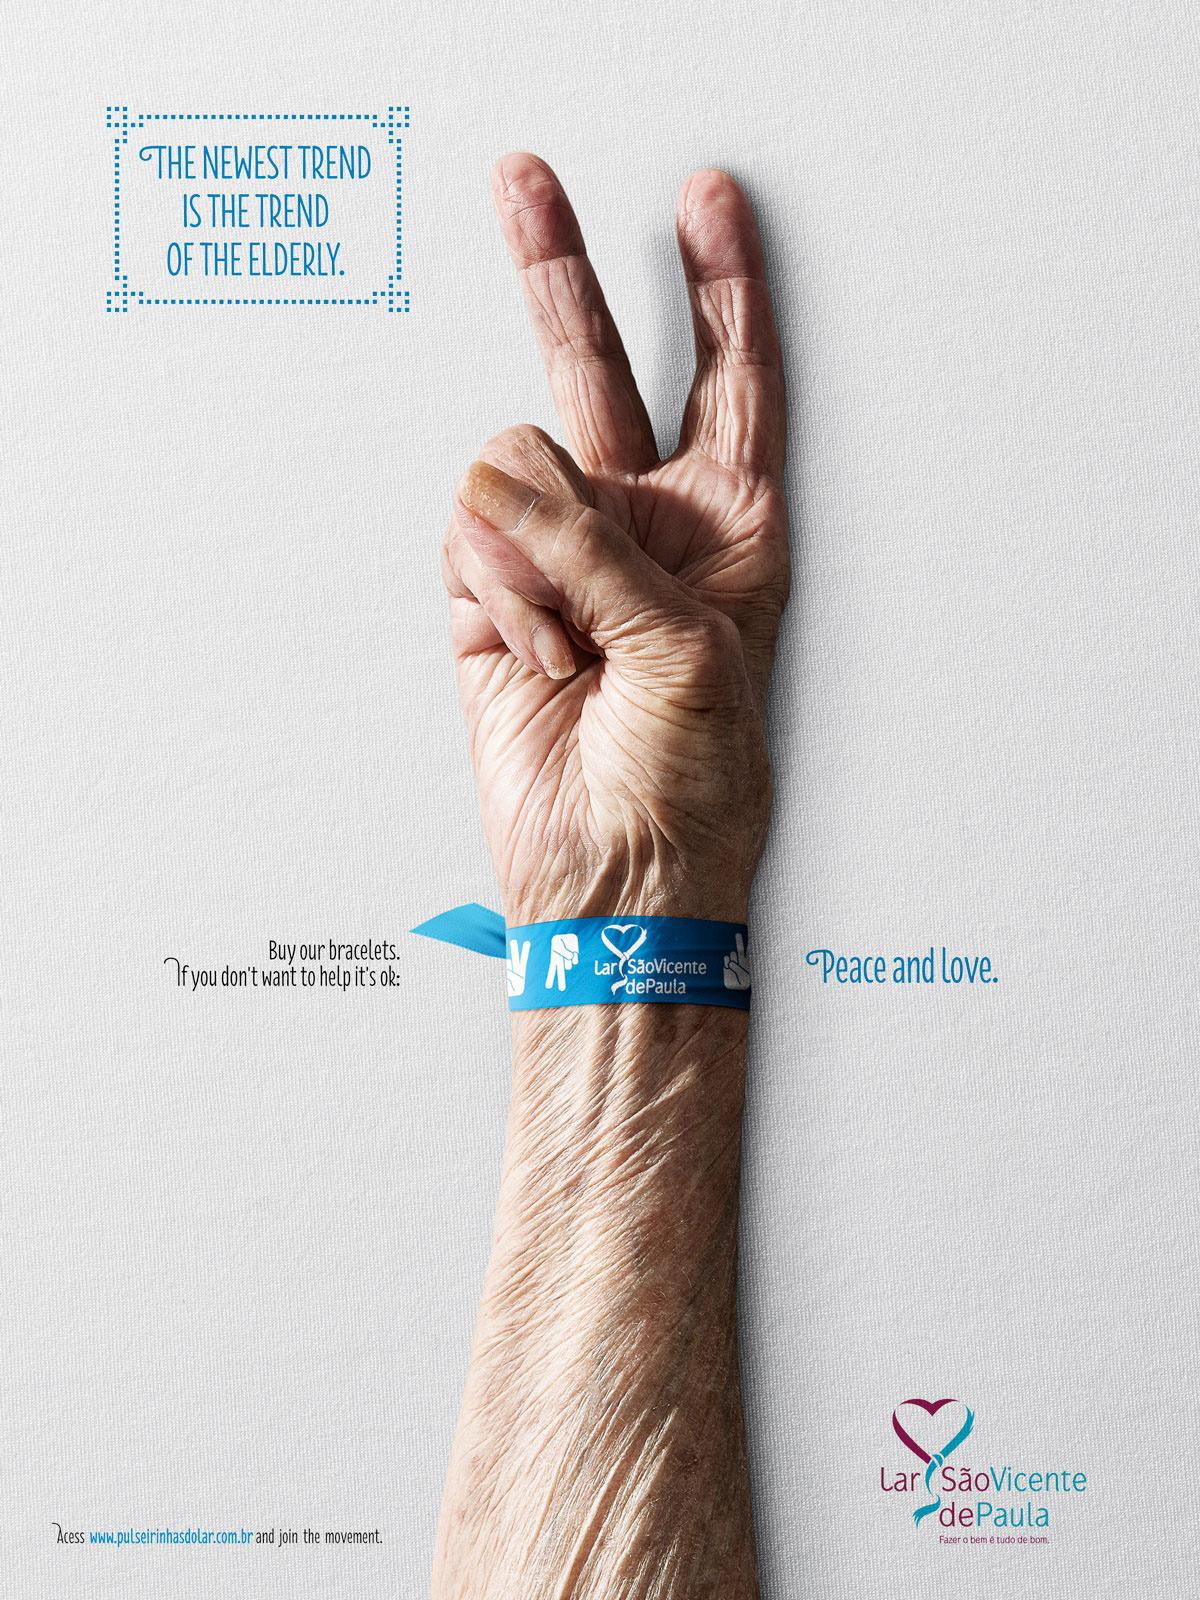 Lar São Vicente de Paula Print Ad -  The newest trend is the trend of elderly, 4